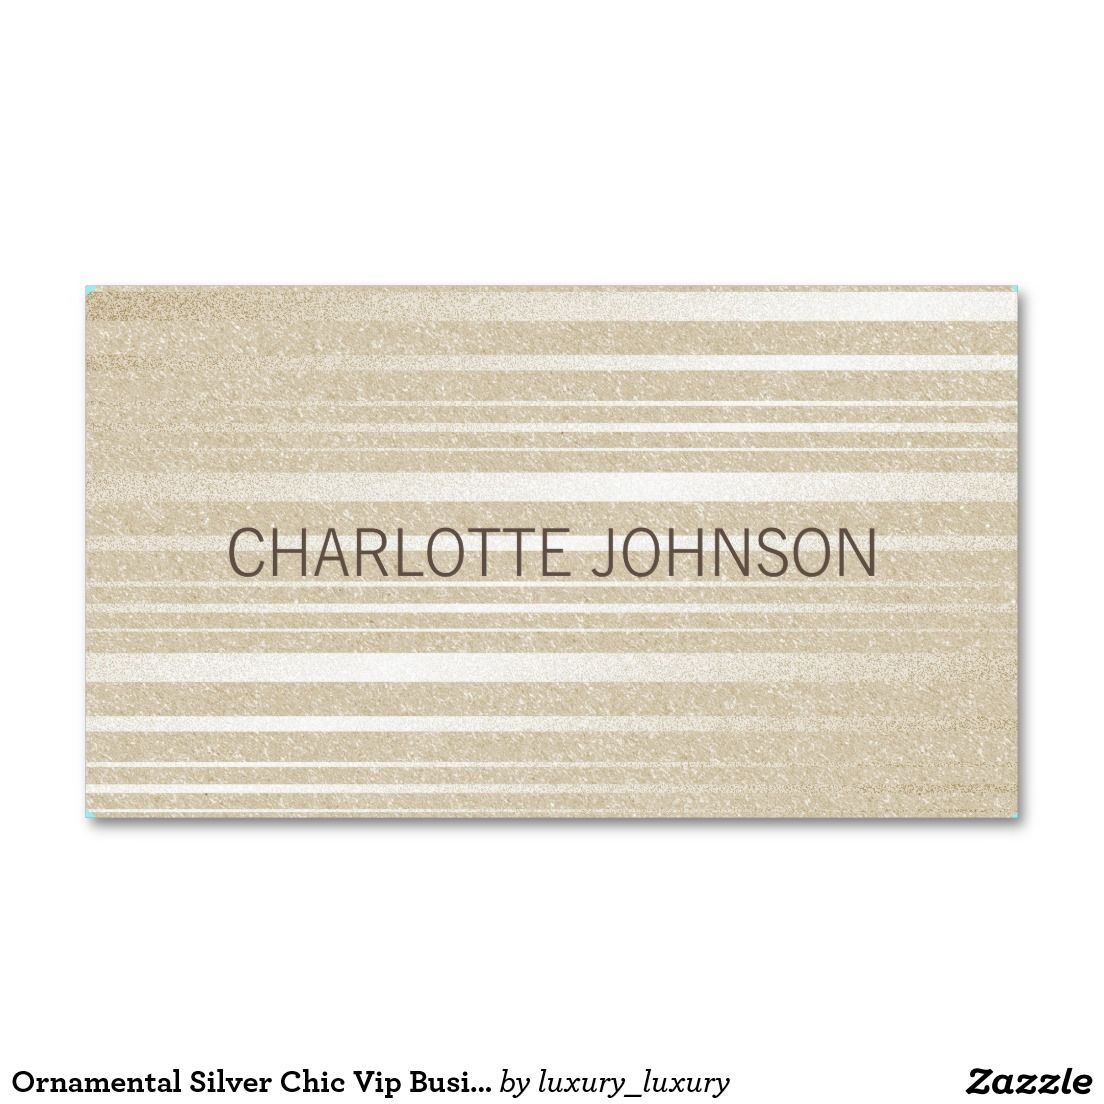 Ornamental Silver Chic Vip Business Card | Business cards and Business